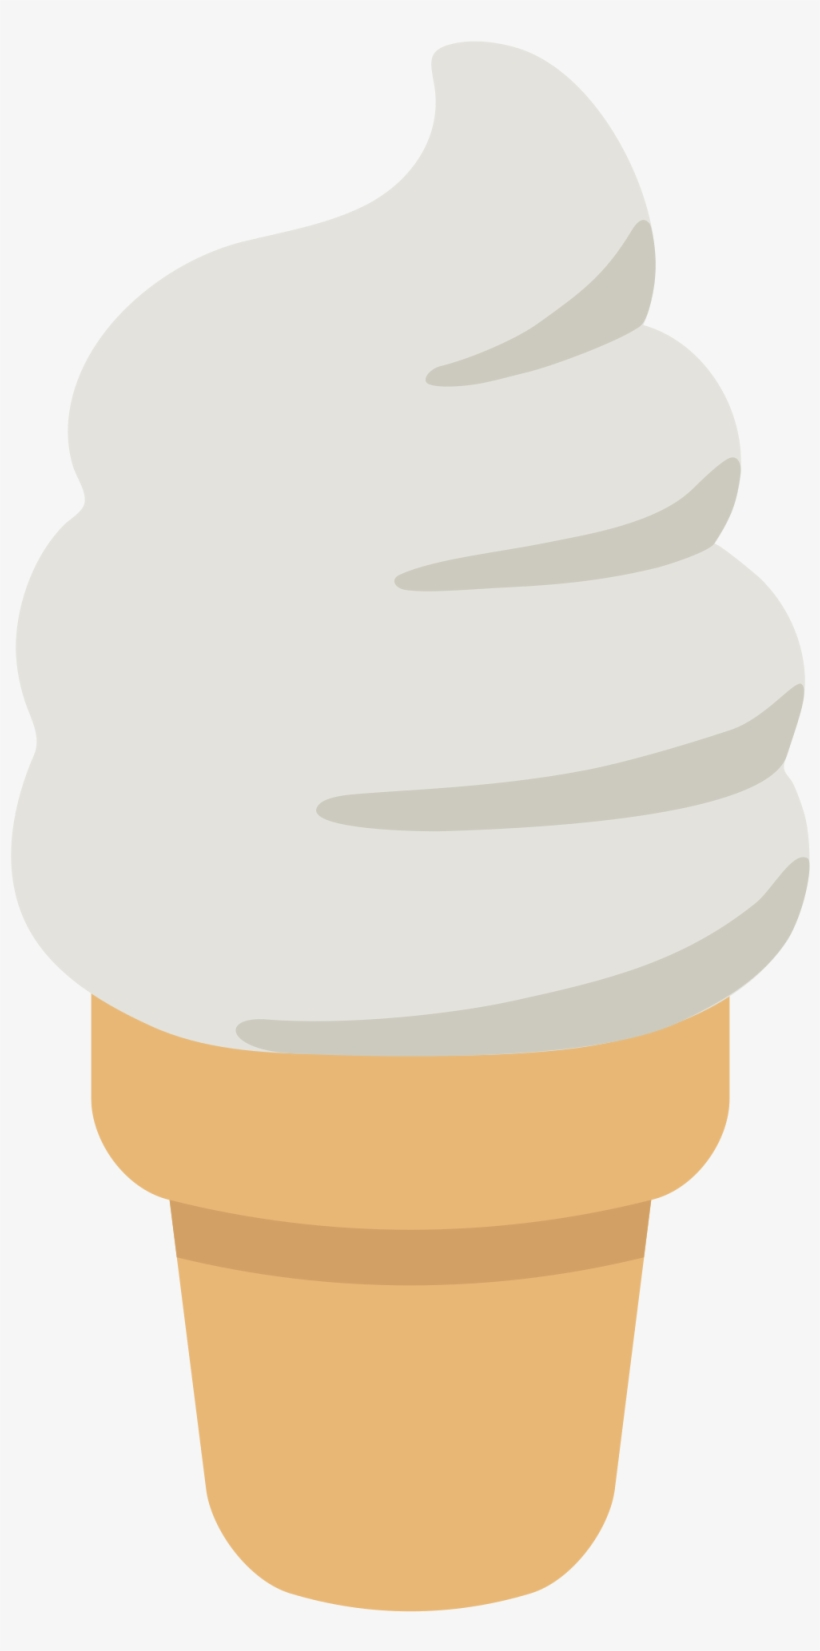 Soft Serve Ice Creams,Ice cream cone,Frozen dessert,Ice.